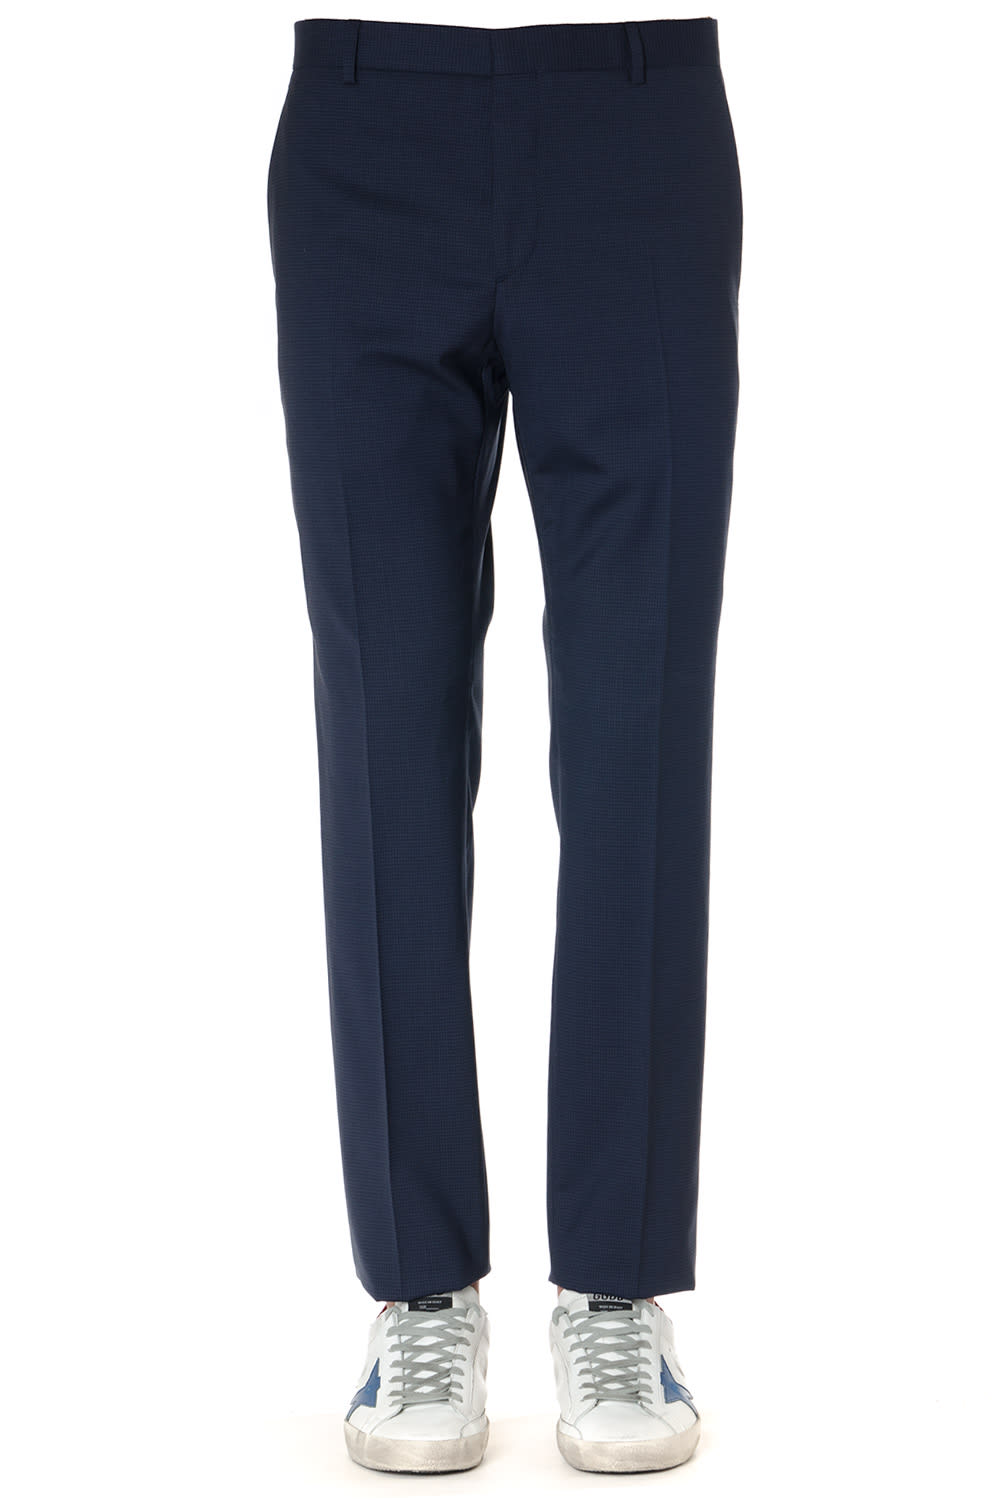 Calvin Klein Navy Virgin Wool Trousers